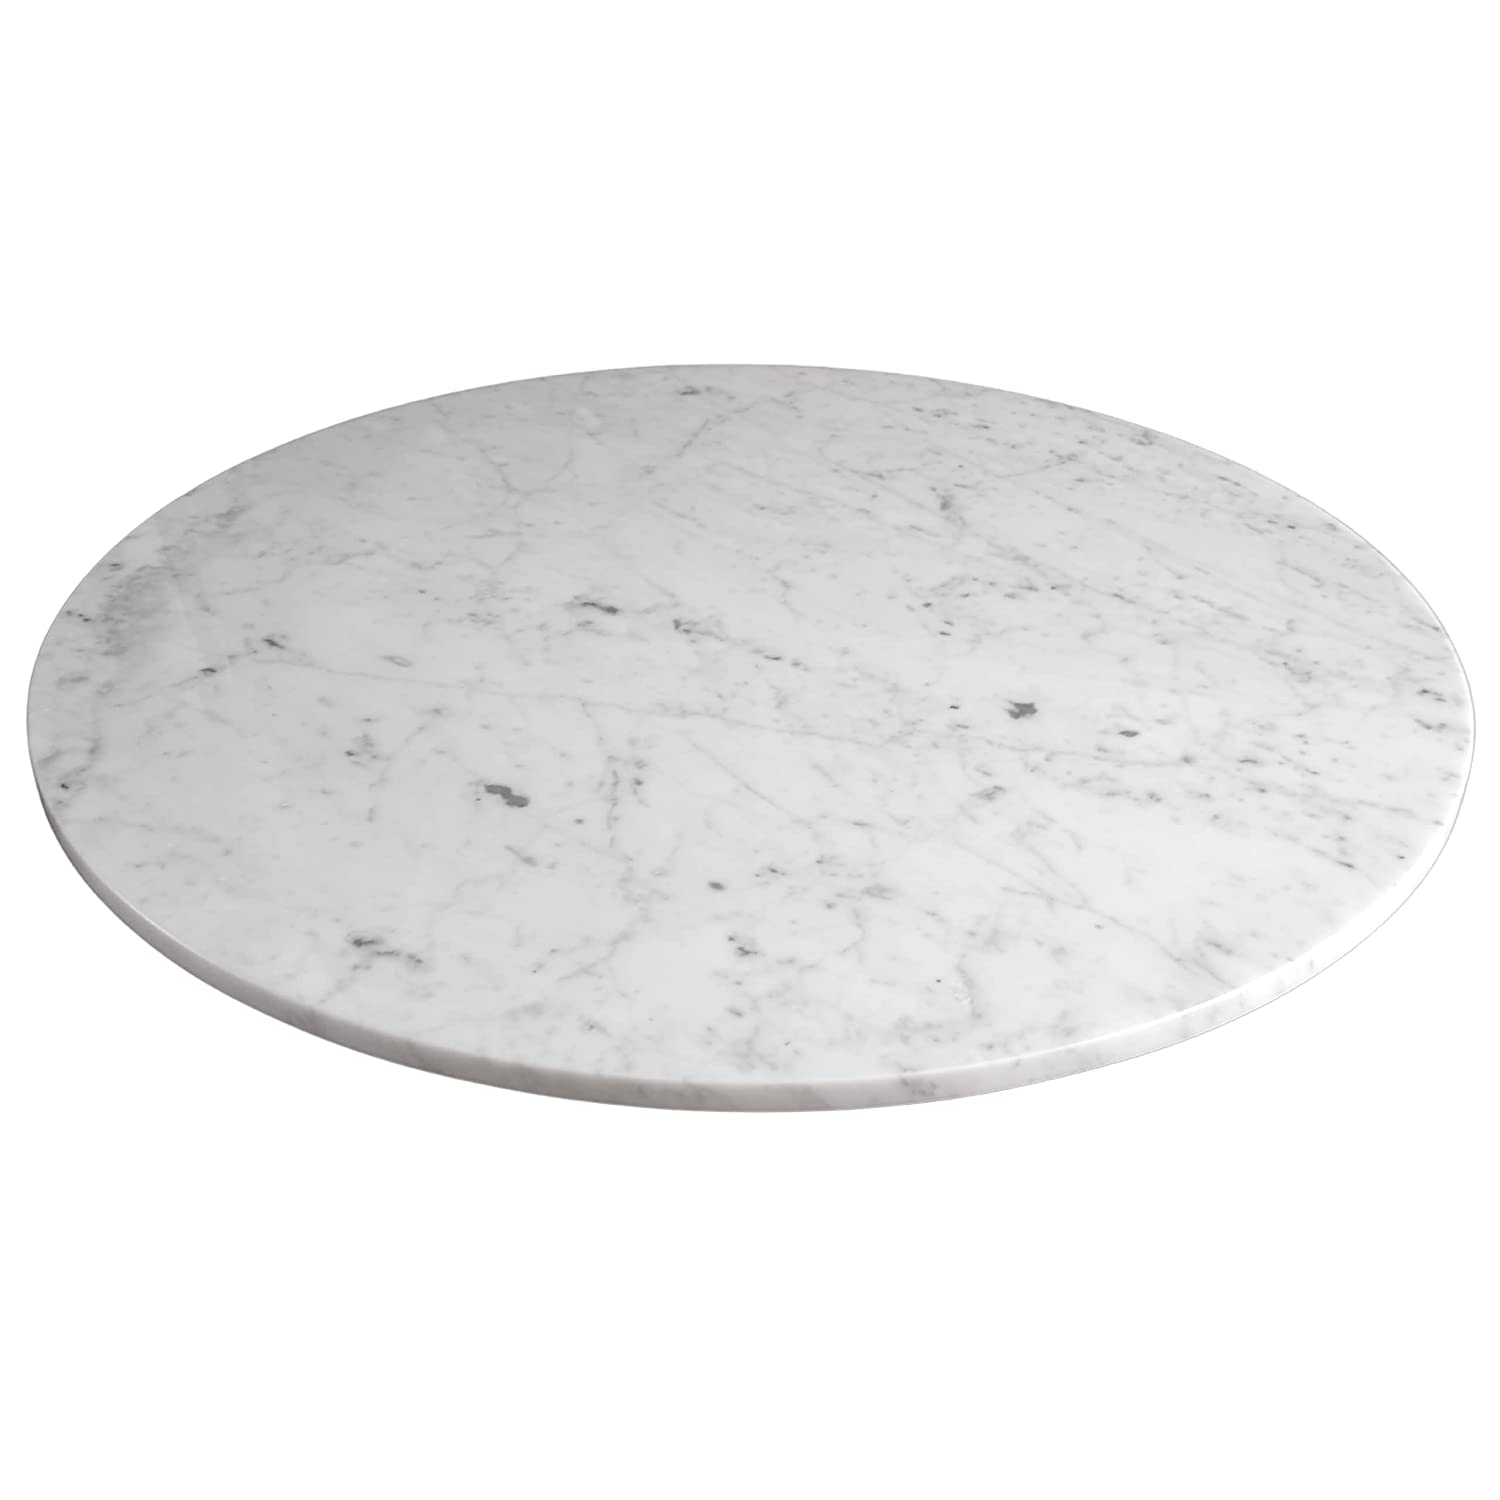 Amazon Com Marble Lazy Susan Turntable Rotating Tray Dining Table Centerpiece Serving Plate Large 22 Inch Handmade